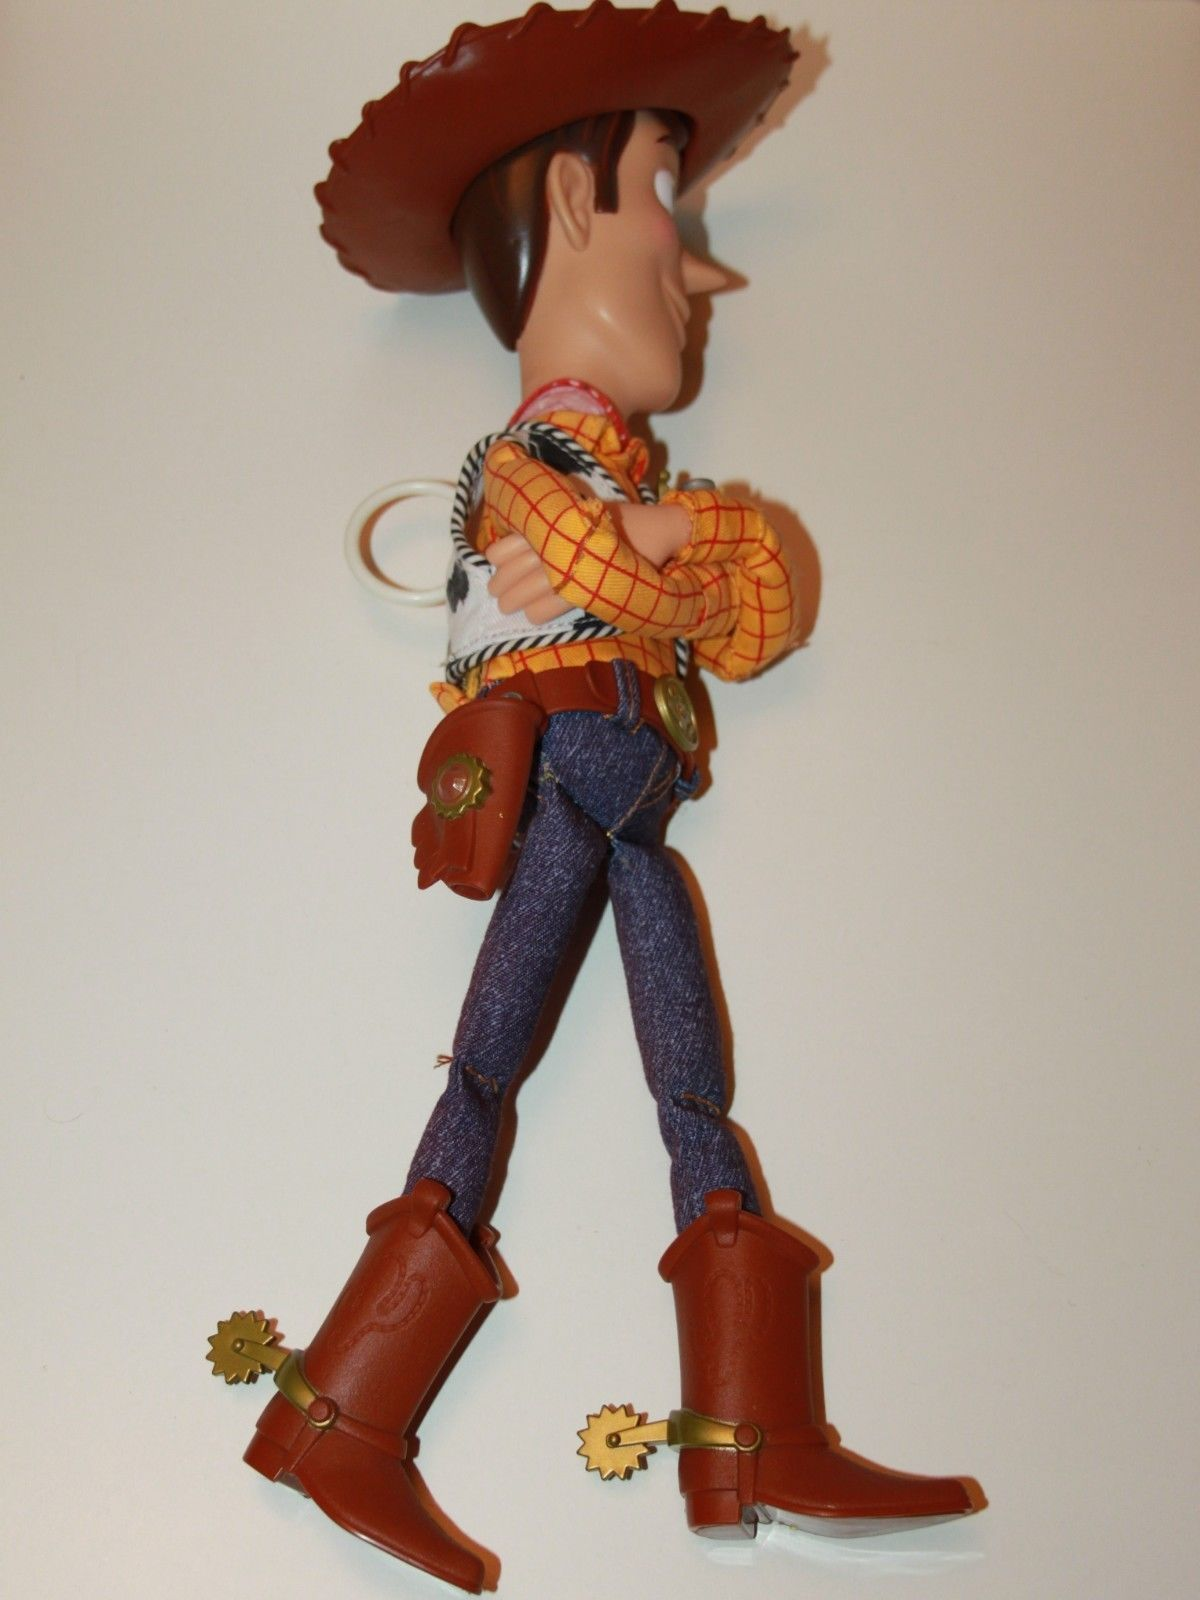 a2a4da667a4 Details about Disney Pixar Toy Story Sheriff Woody Talking Doll Pull ...